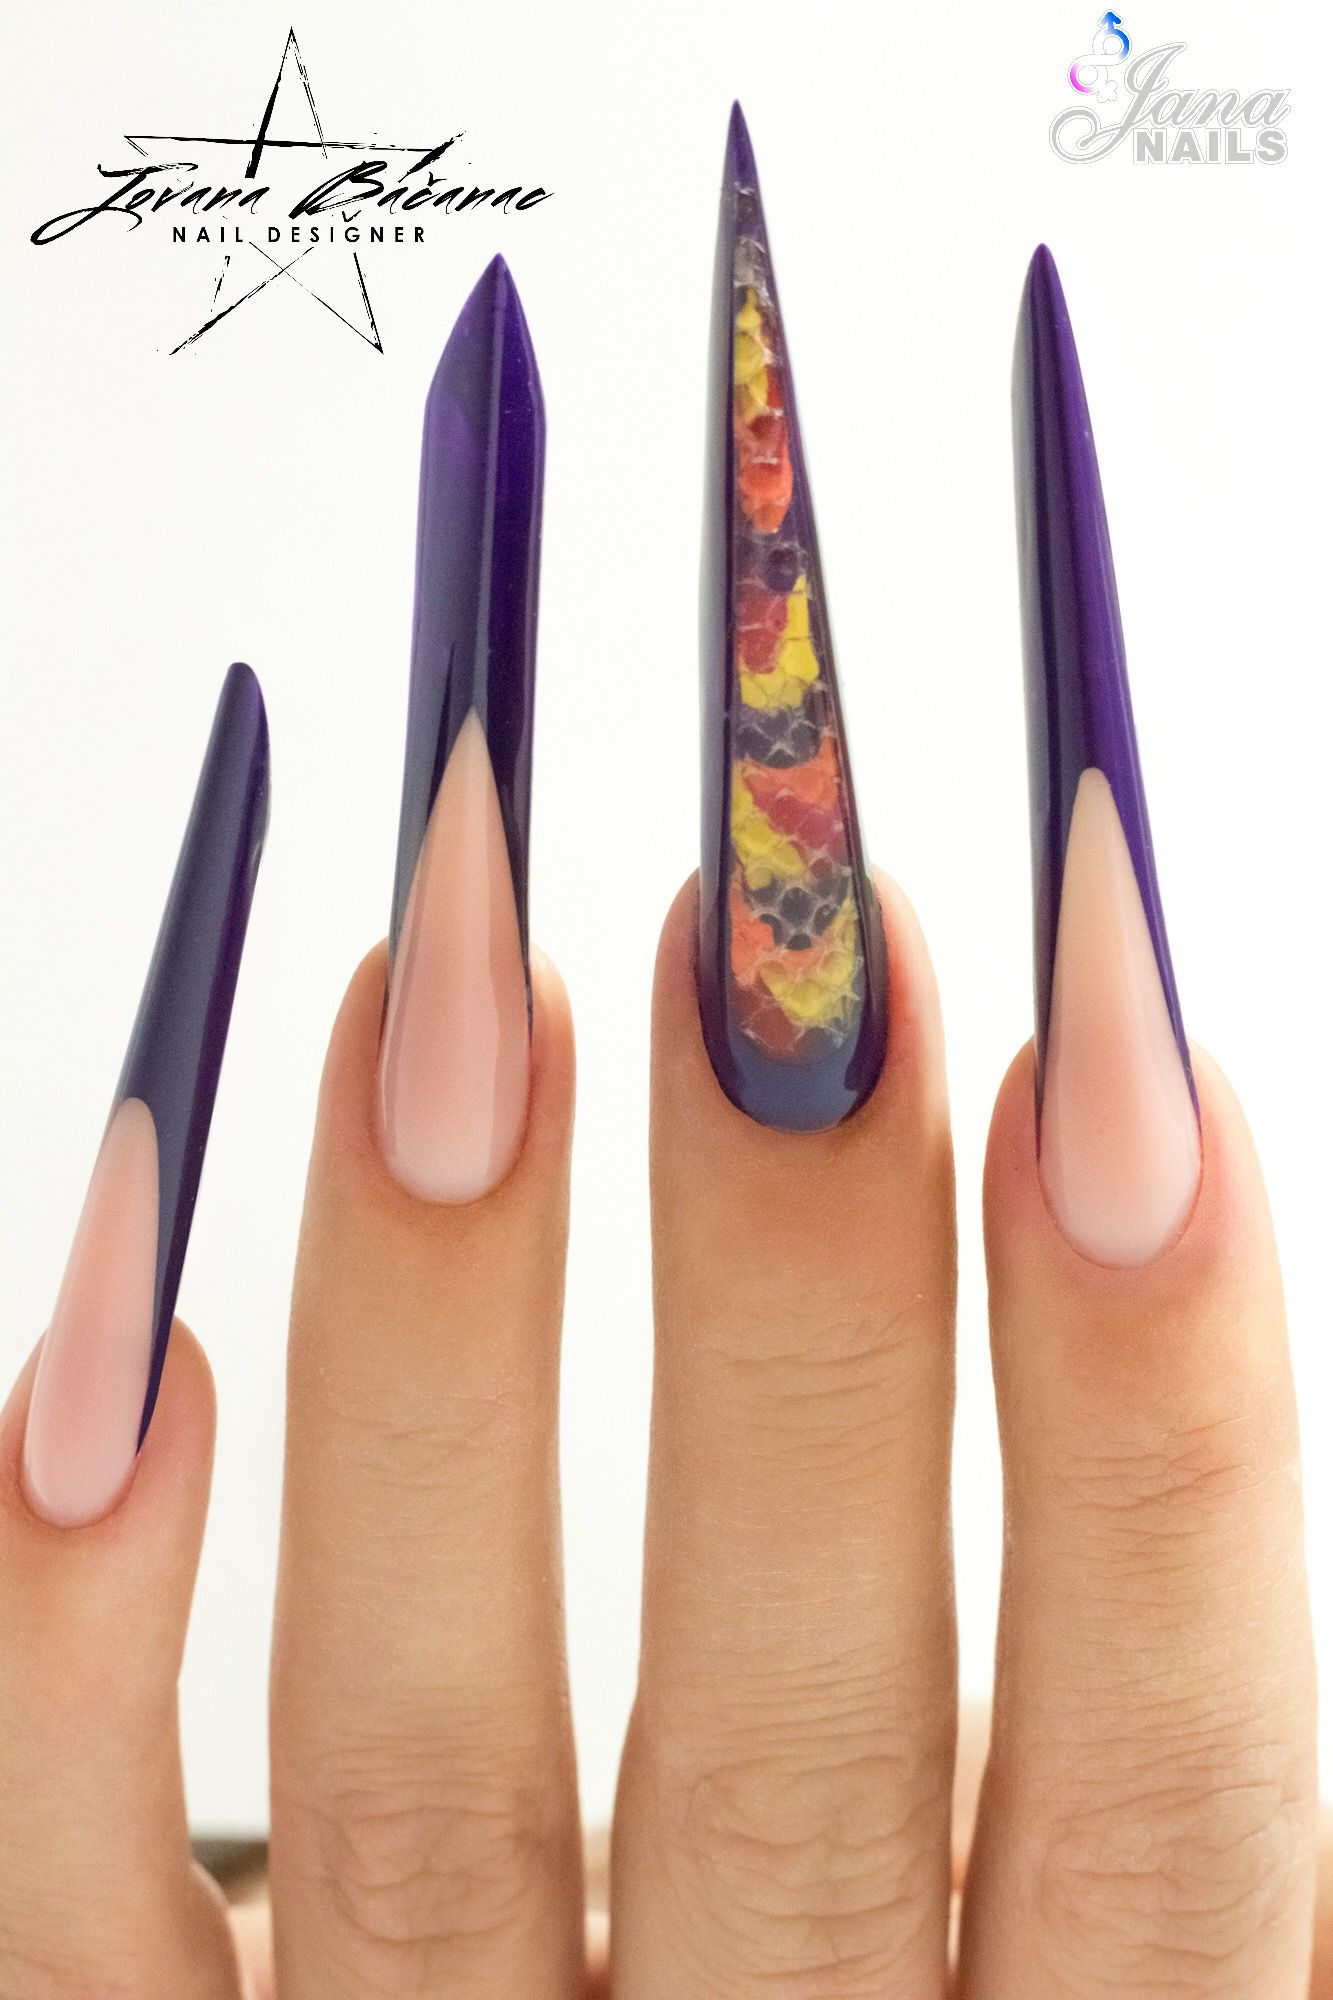 Few extreme nail shapes 💅🏻 Nail shapes, Nail art designs